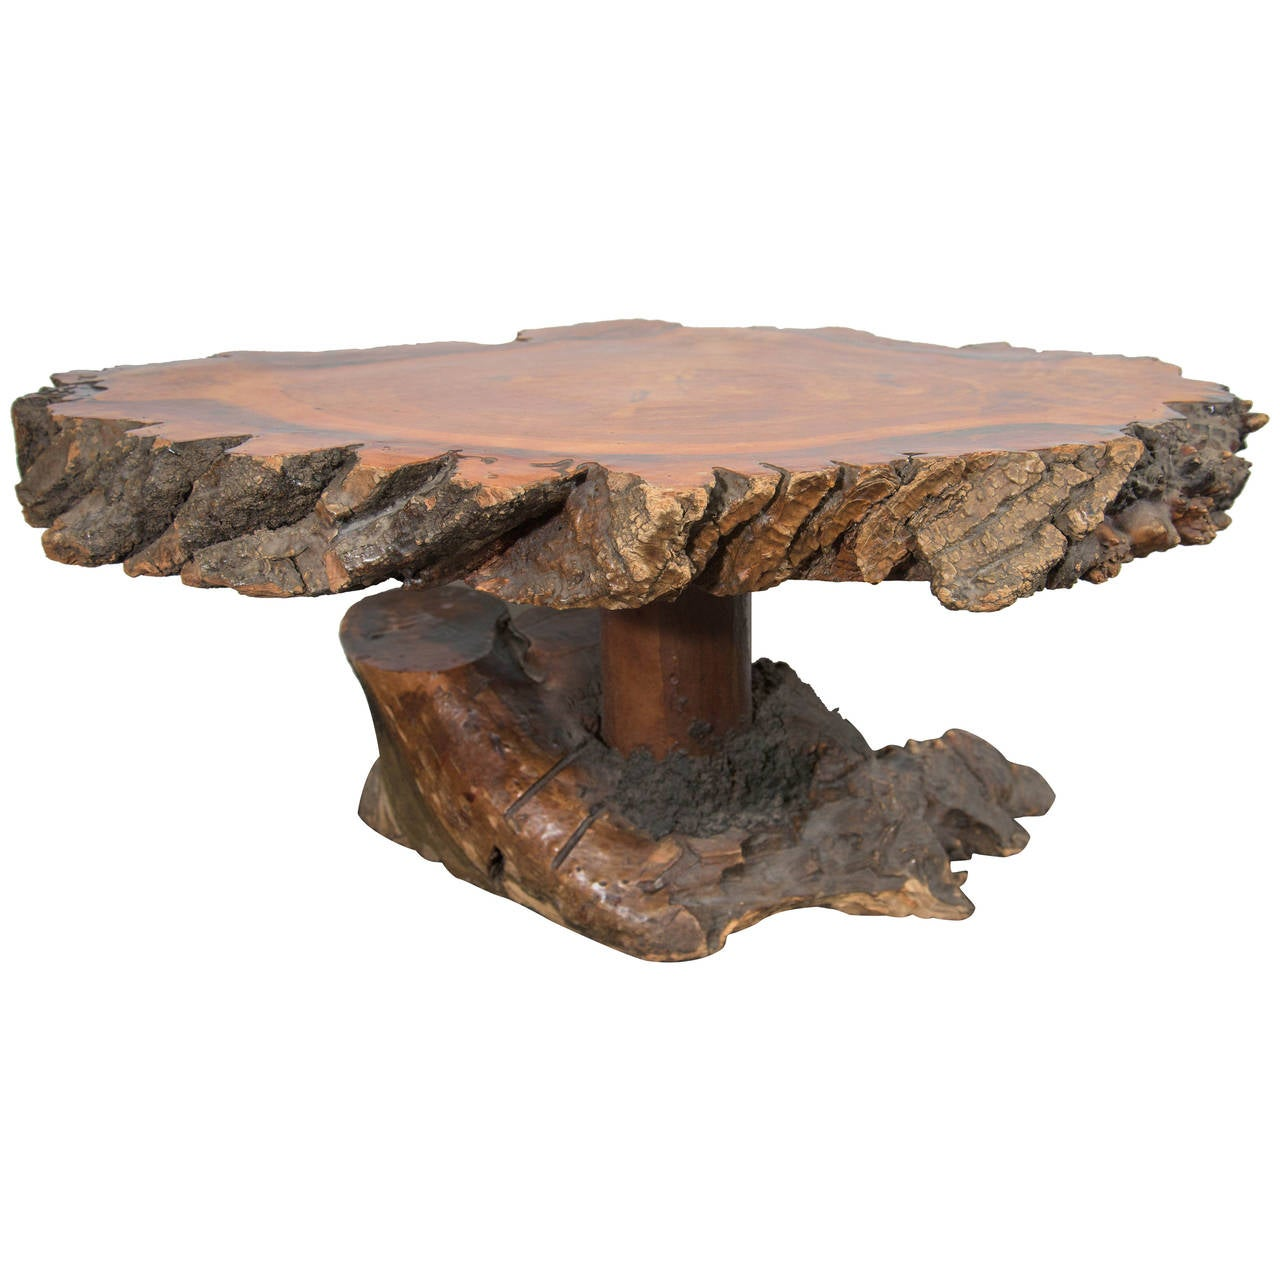 Vintage Burled Cypress Wood Live Edge Side Table For Sale at 1stdibs